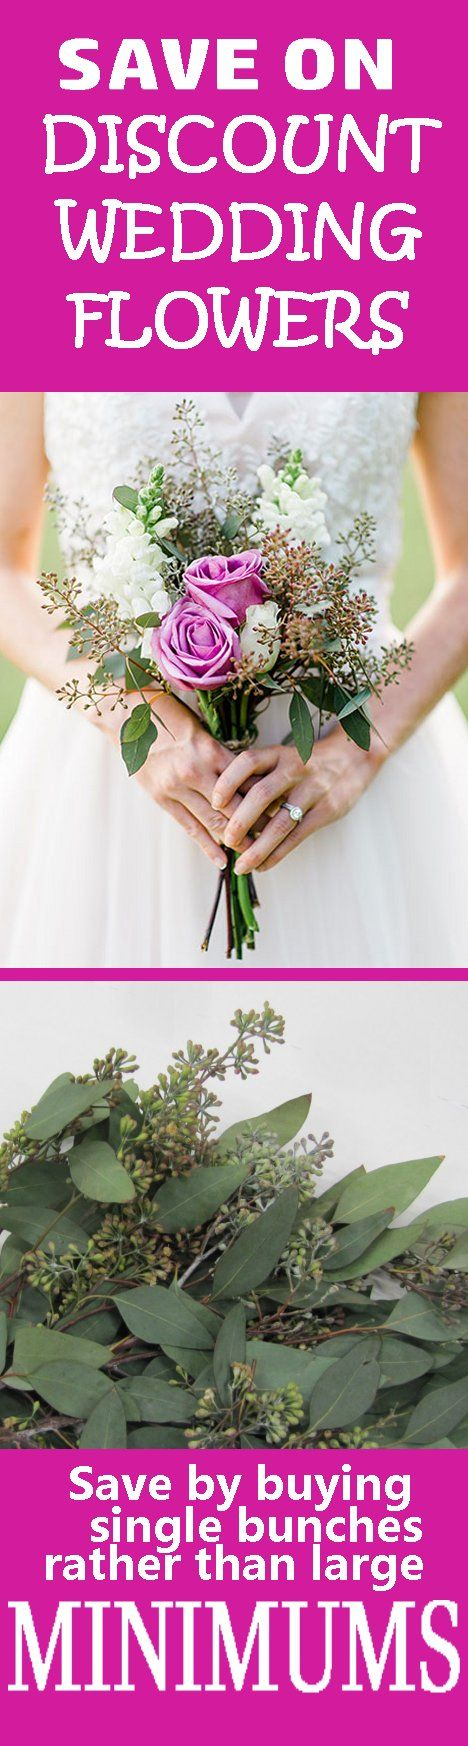 Best 25 Wedding flowers prices ideas only on Pinterest Discount